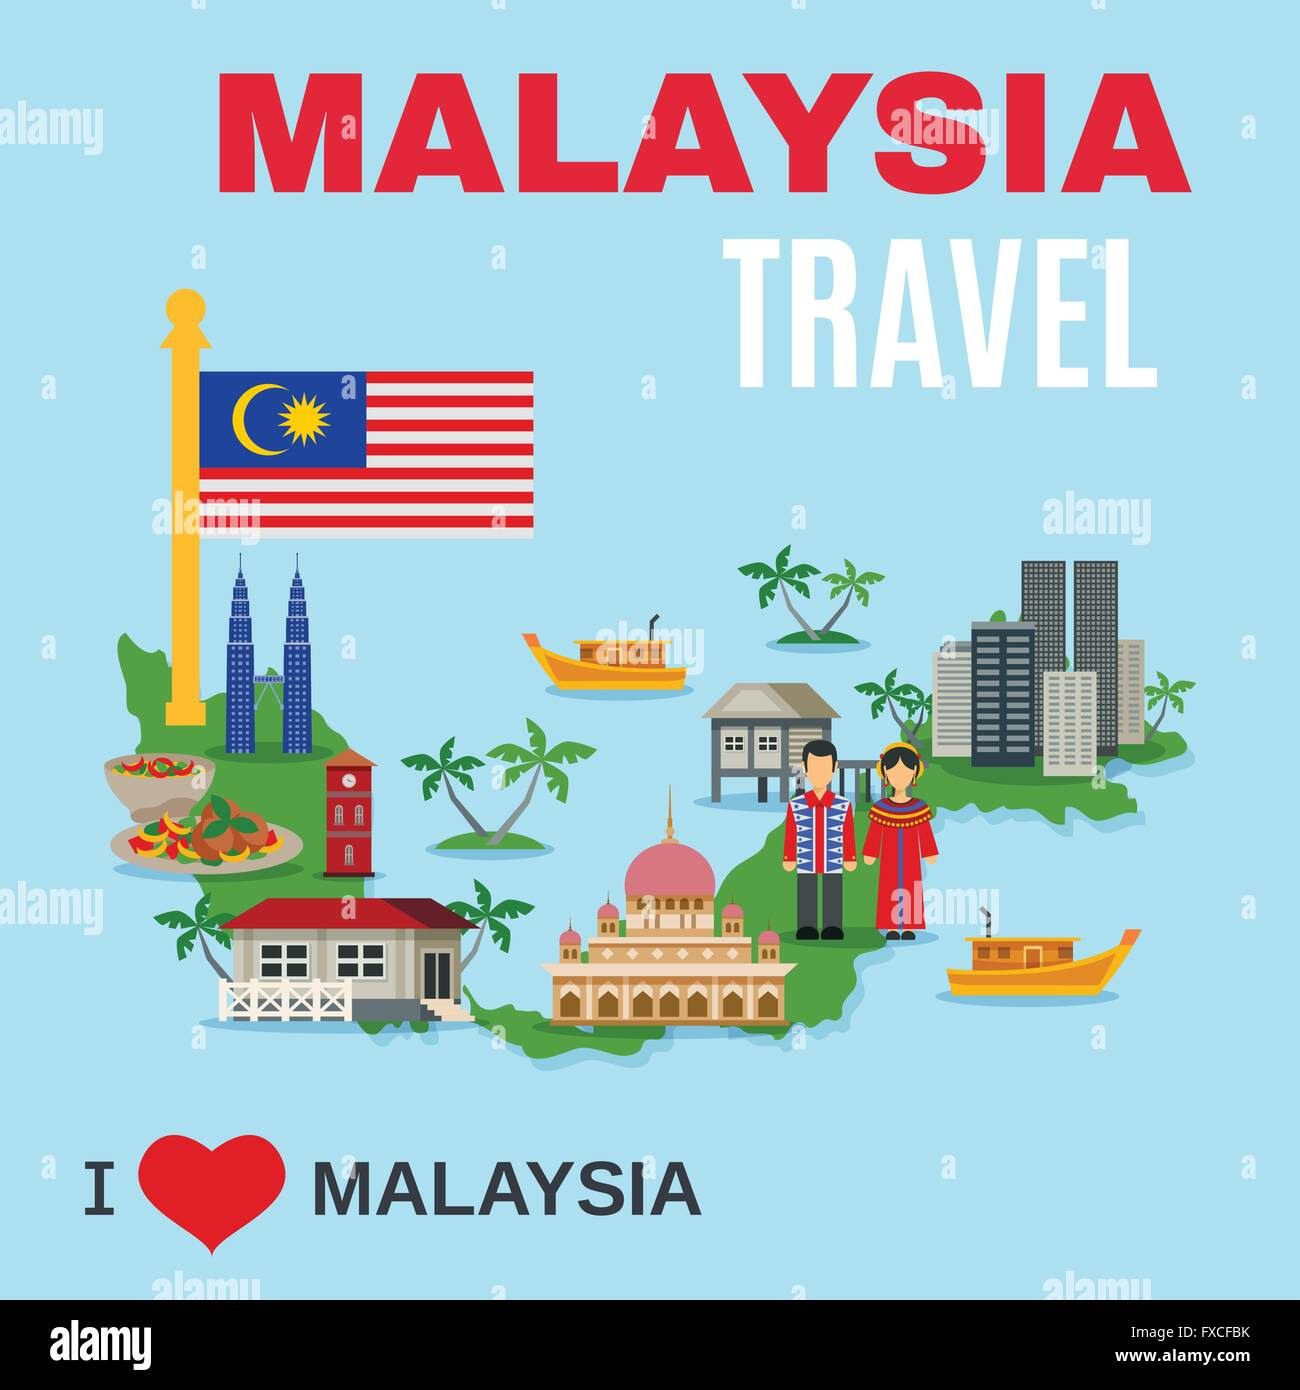 Malaysia Culture: Malaysia Culture Travel Agency Flat Poster Stock Vector